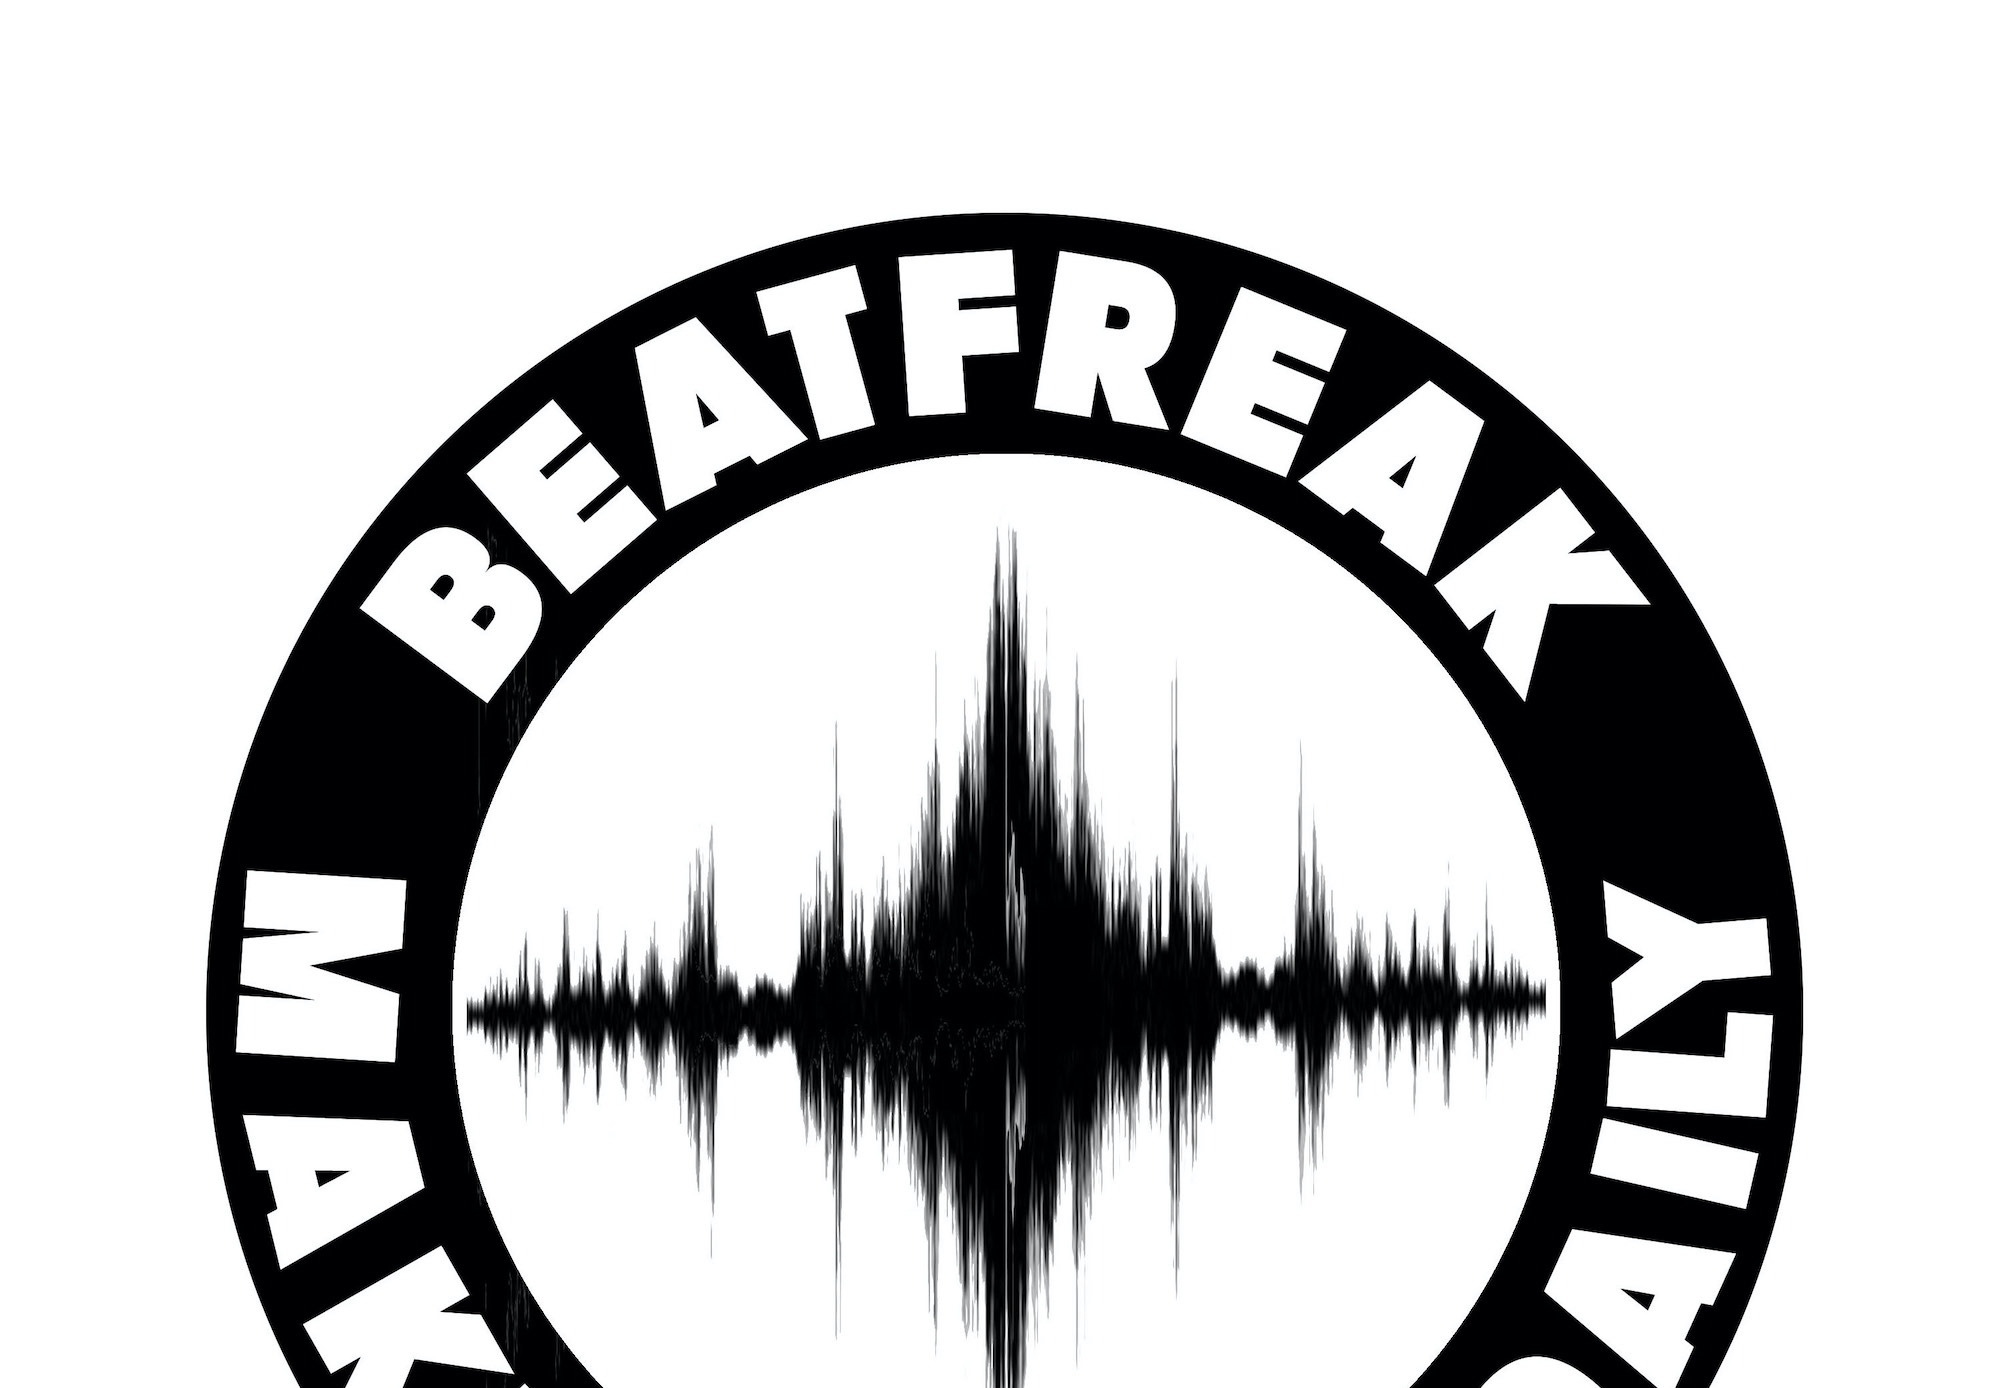 Beat freak   2000